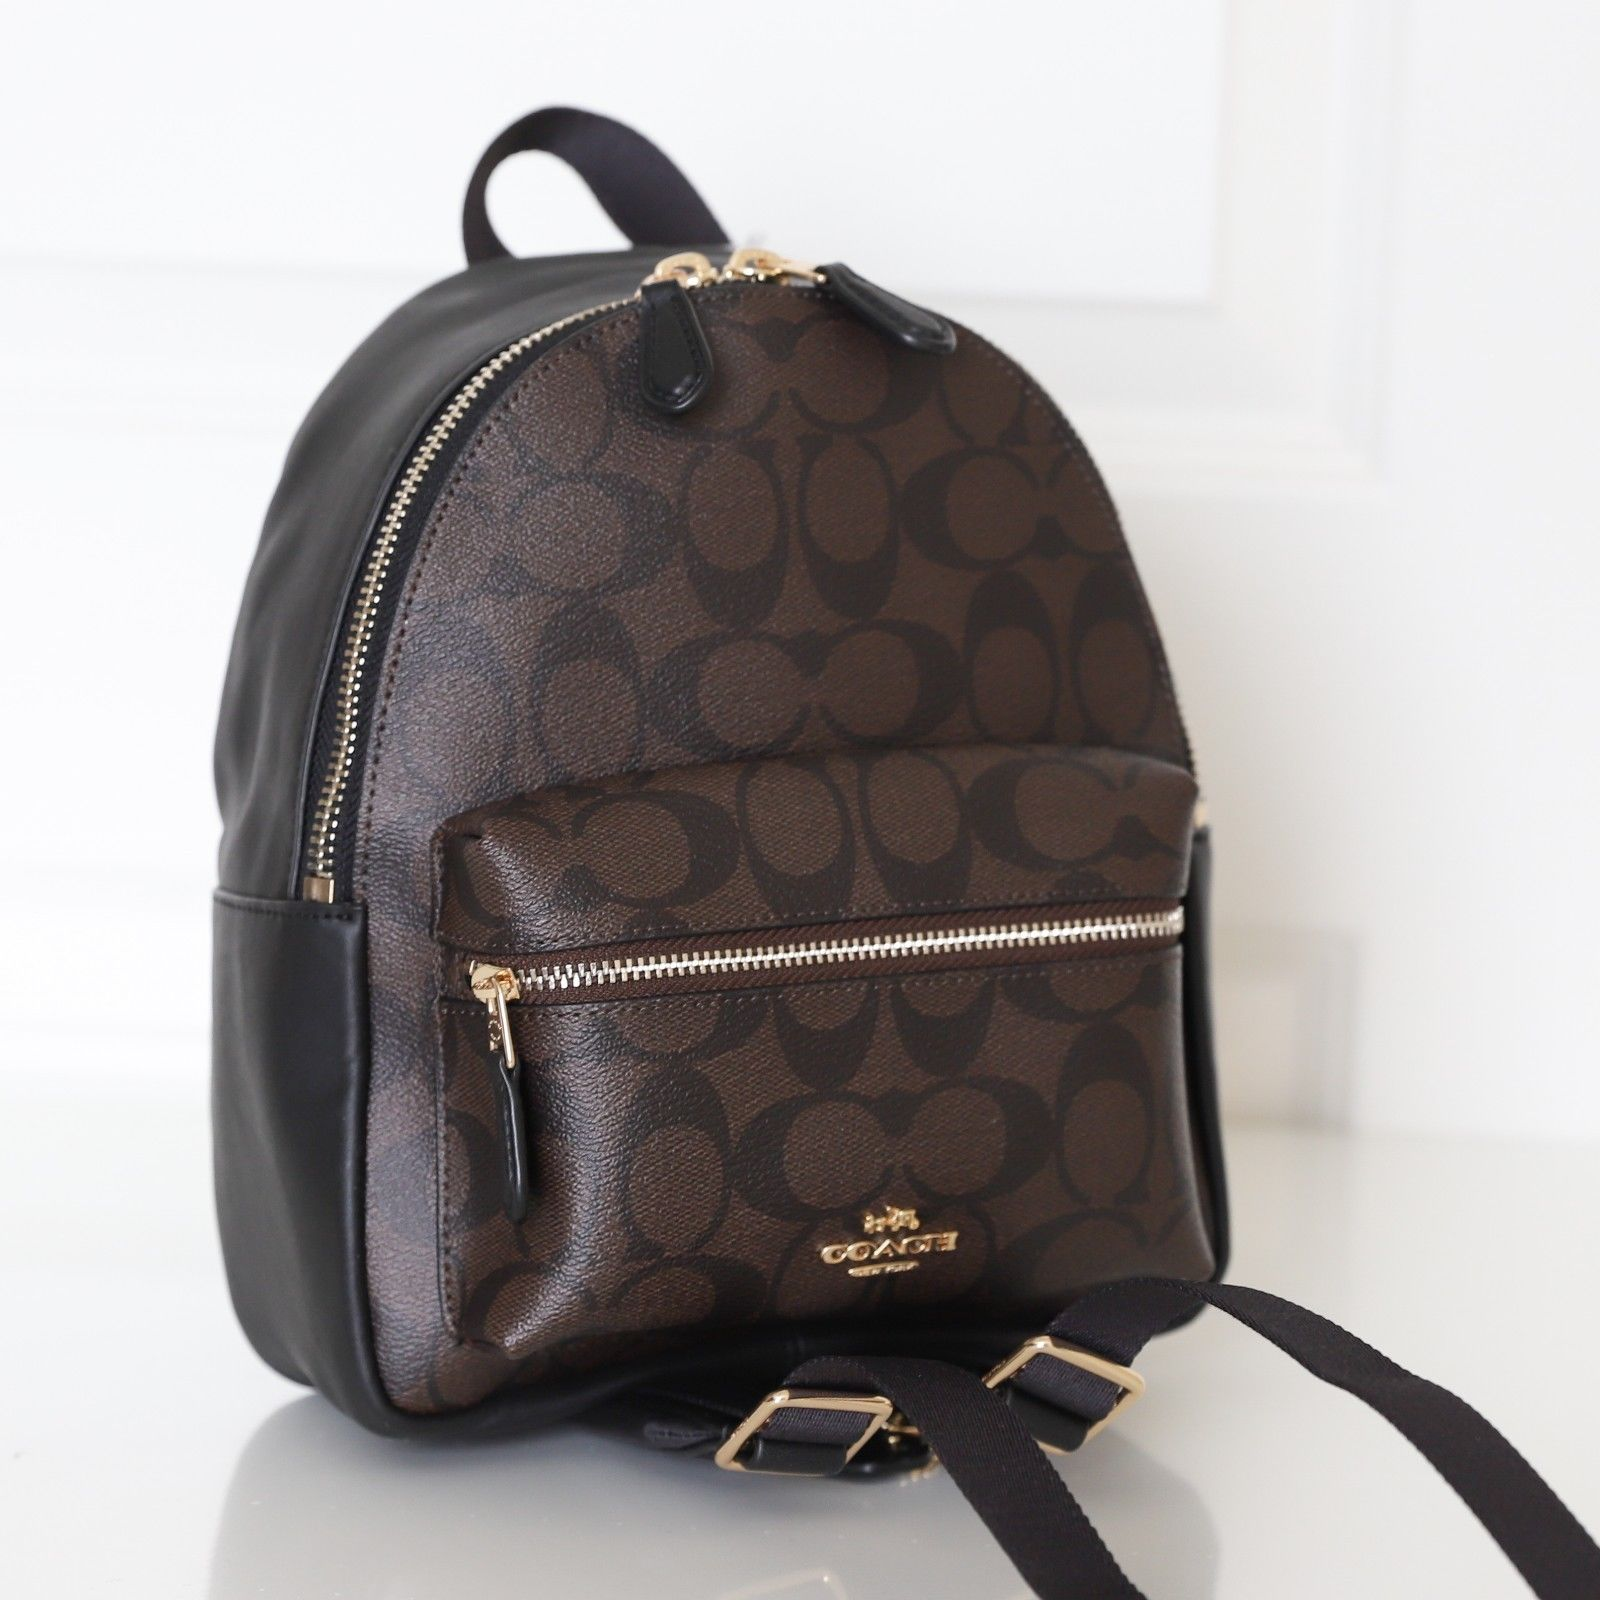 41f843661d10 ... uk new coach mini charlie backpack in signature retail 295.00 37104  ac656